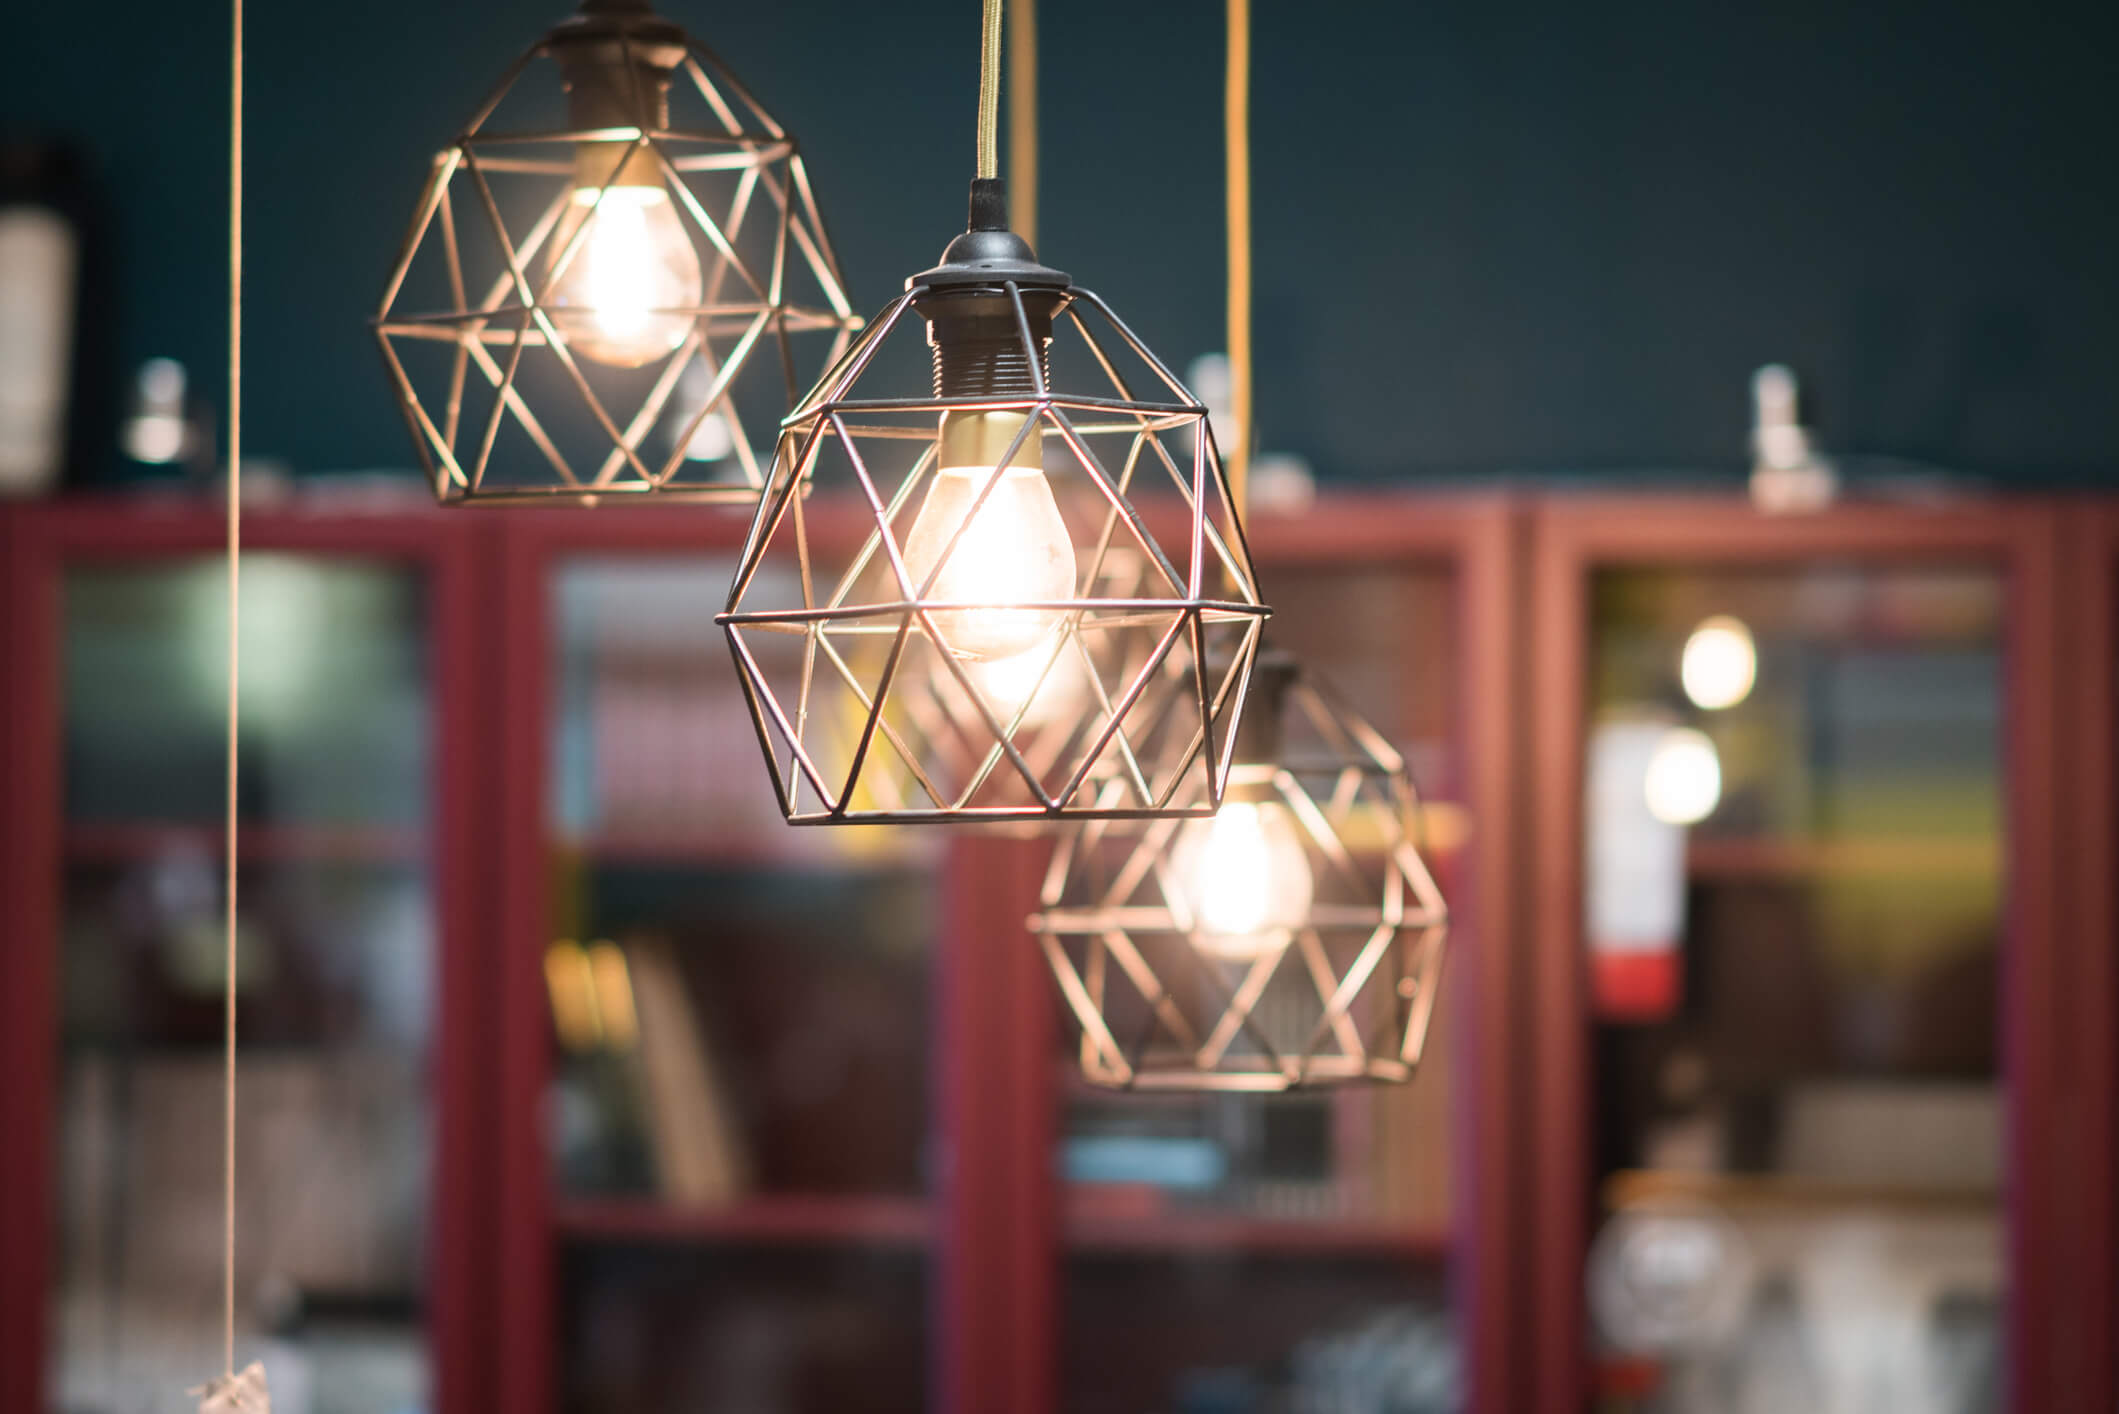 Three cage-style hanging lamps